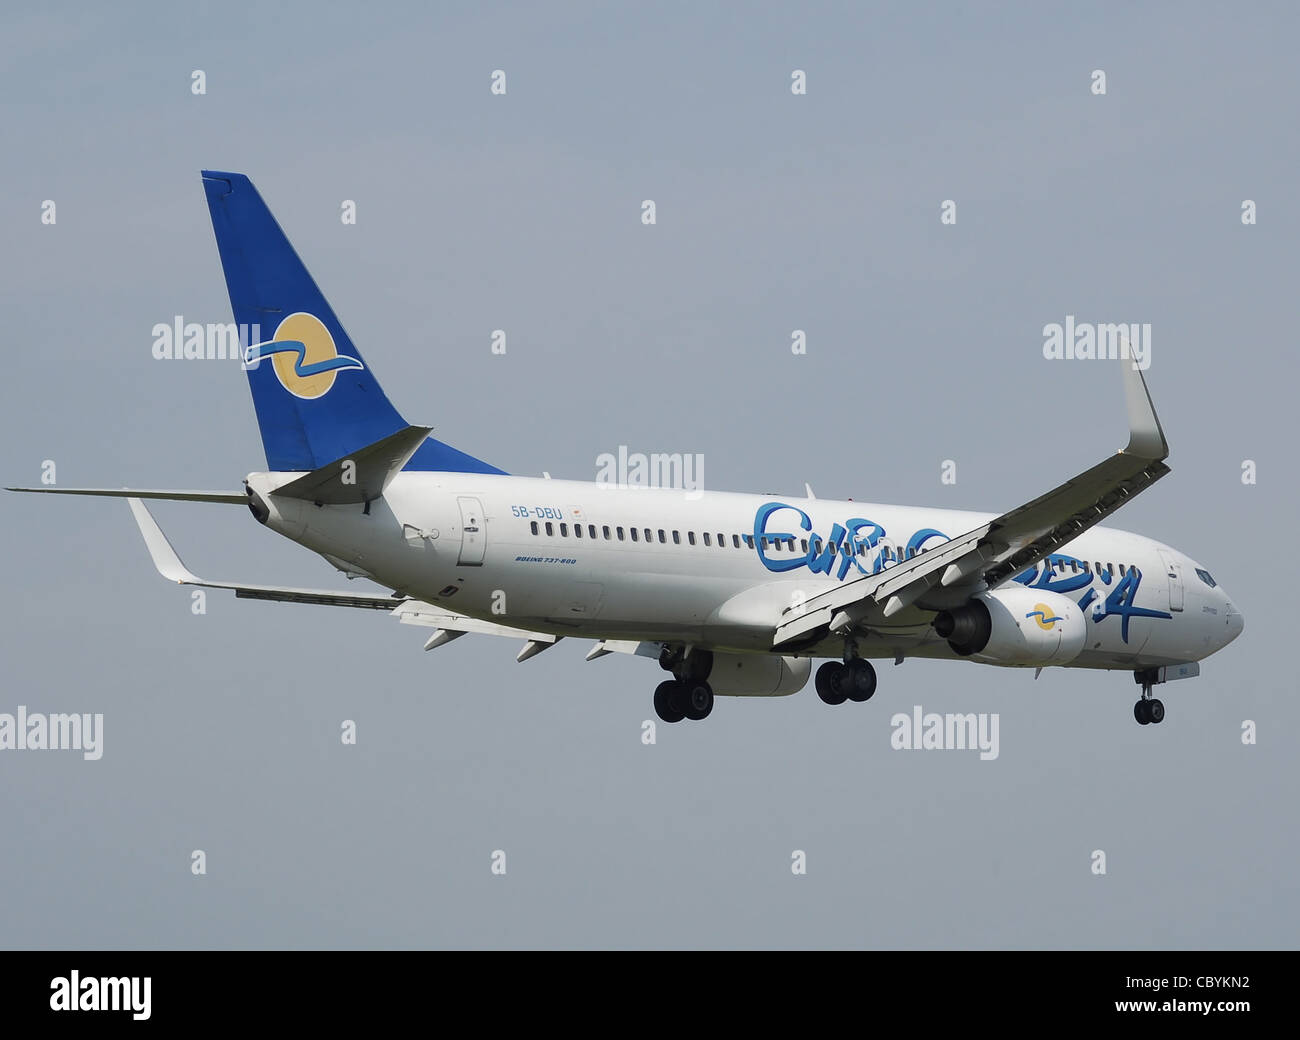 Eurocypria Boeing B737-800 (5B-DBU) lands at Birmingham International Airport, England. - Stock Image